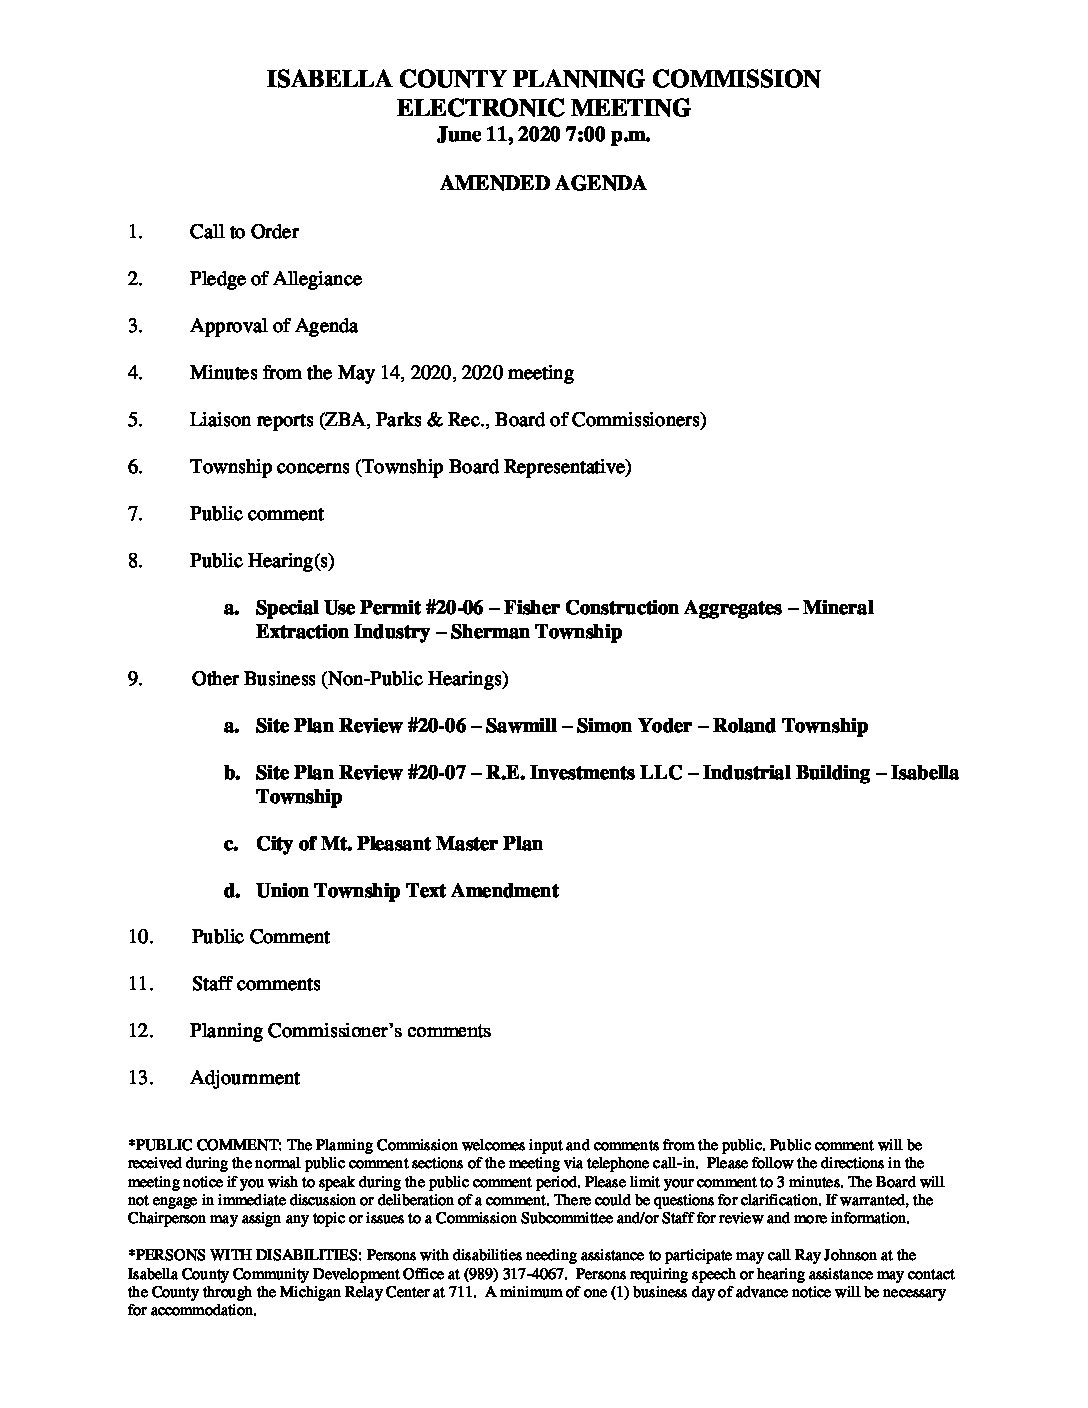 preview image of first page June 11, 2020 Amended Agenda